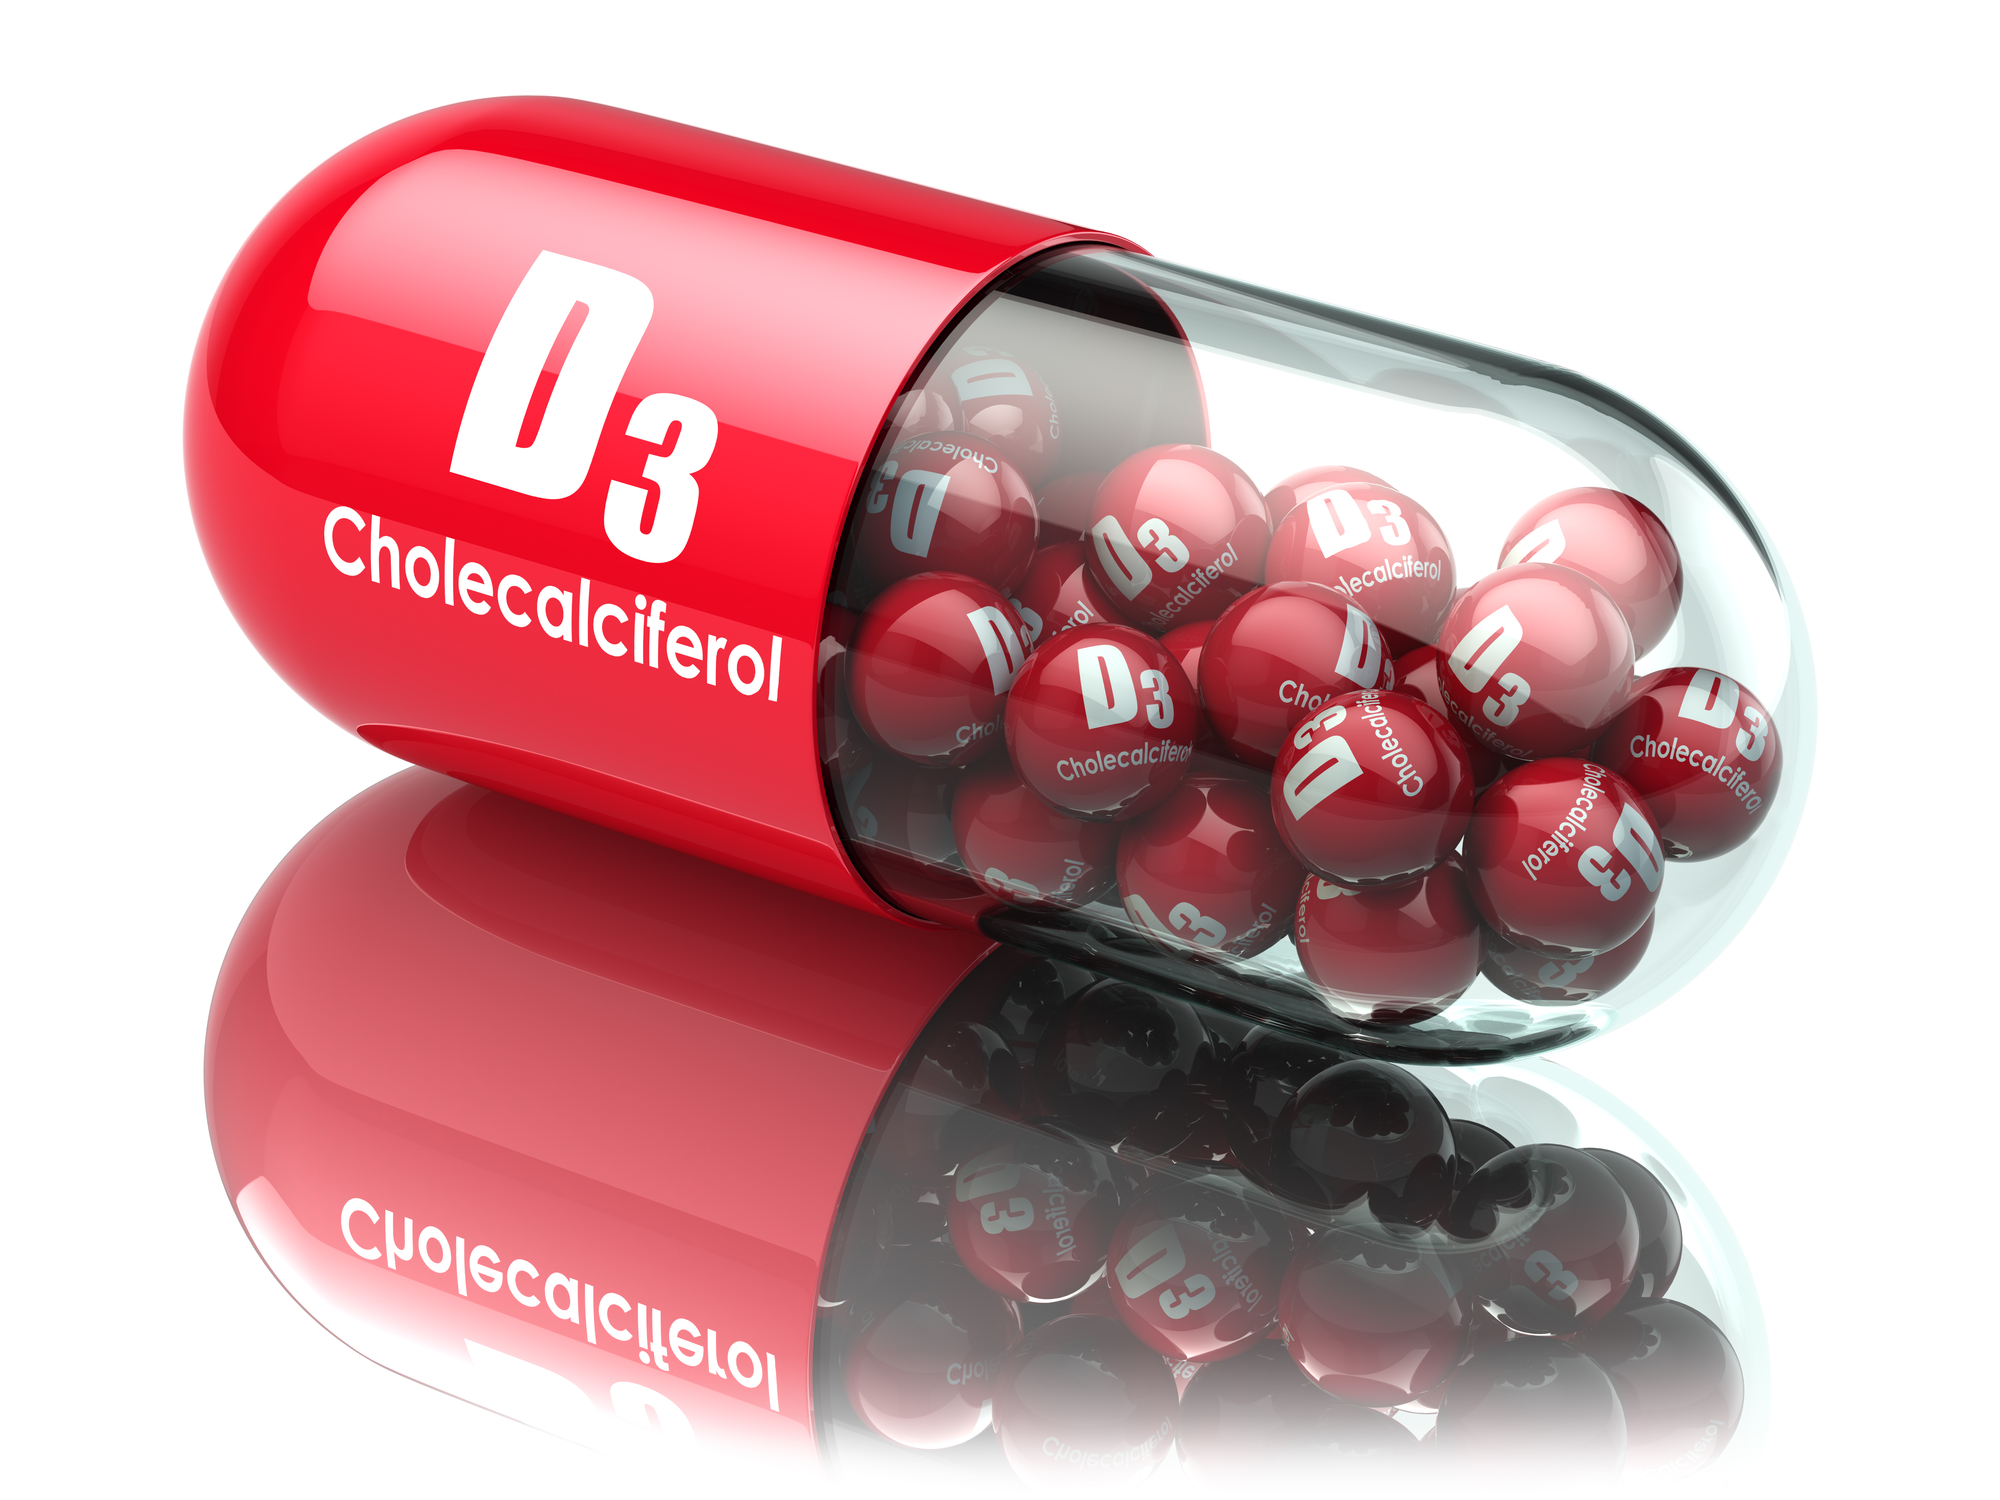 Vitamin D supplement. Cholecalciferol